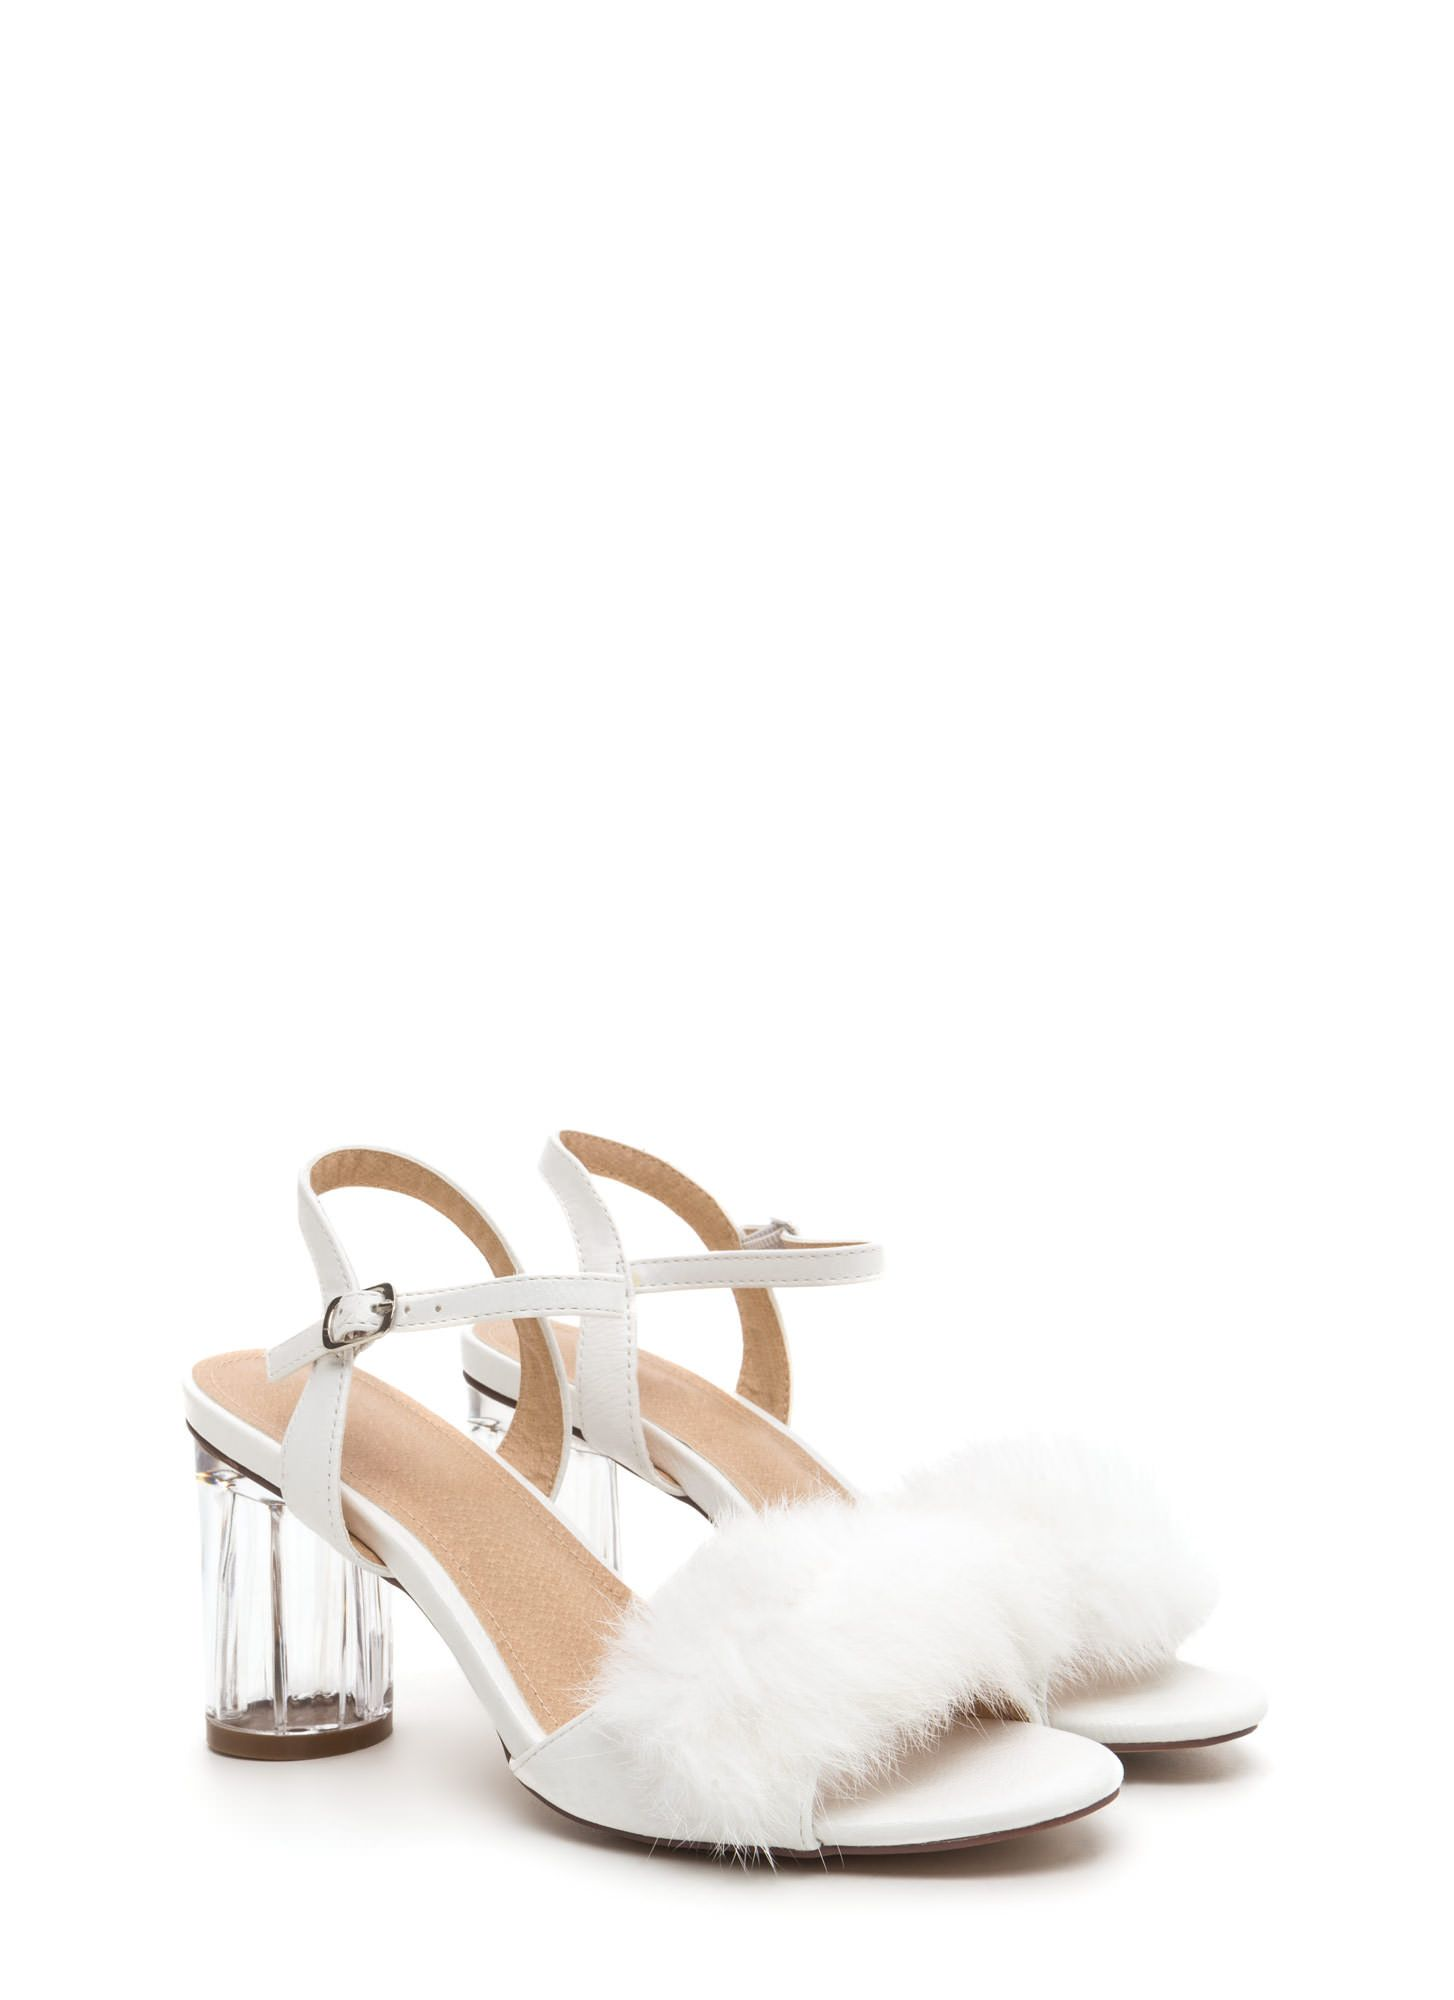 A Fur Clear Chunky Effort Heels WhiteShoes drexCBoW